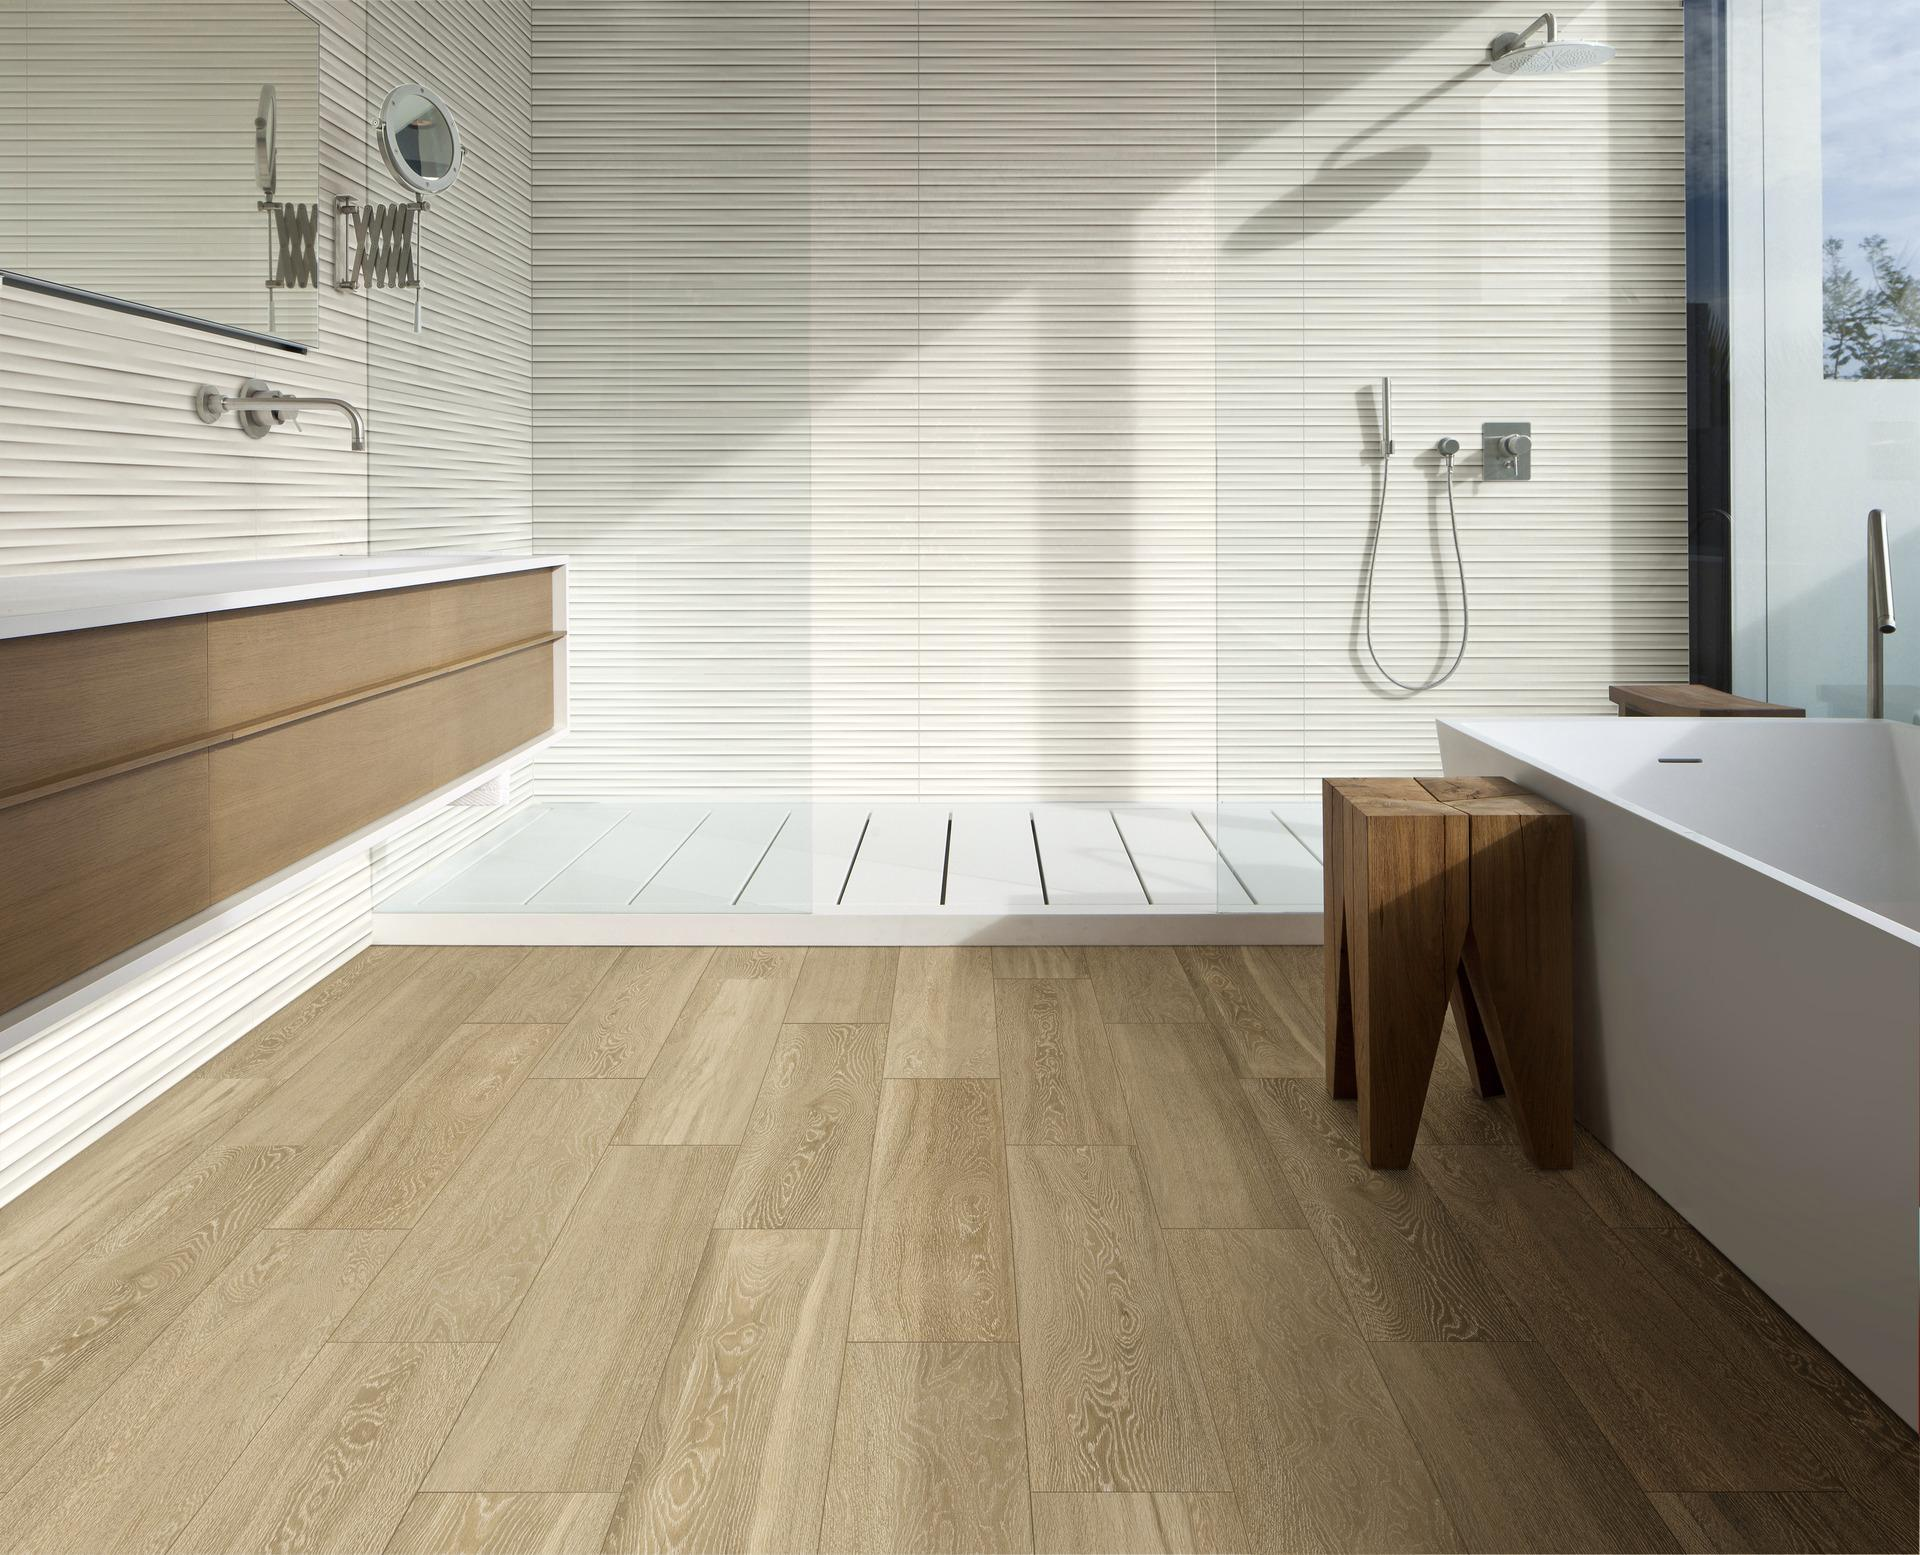 Treverkview - Wood Effect - Bathroom